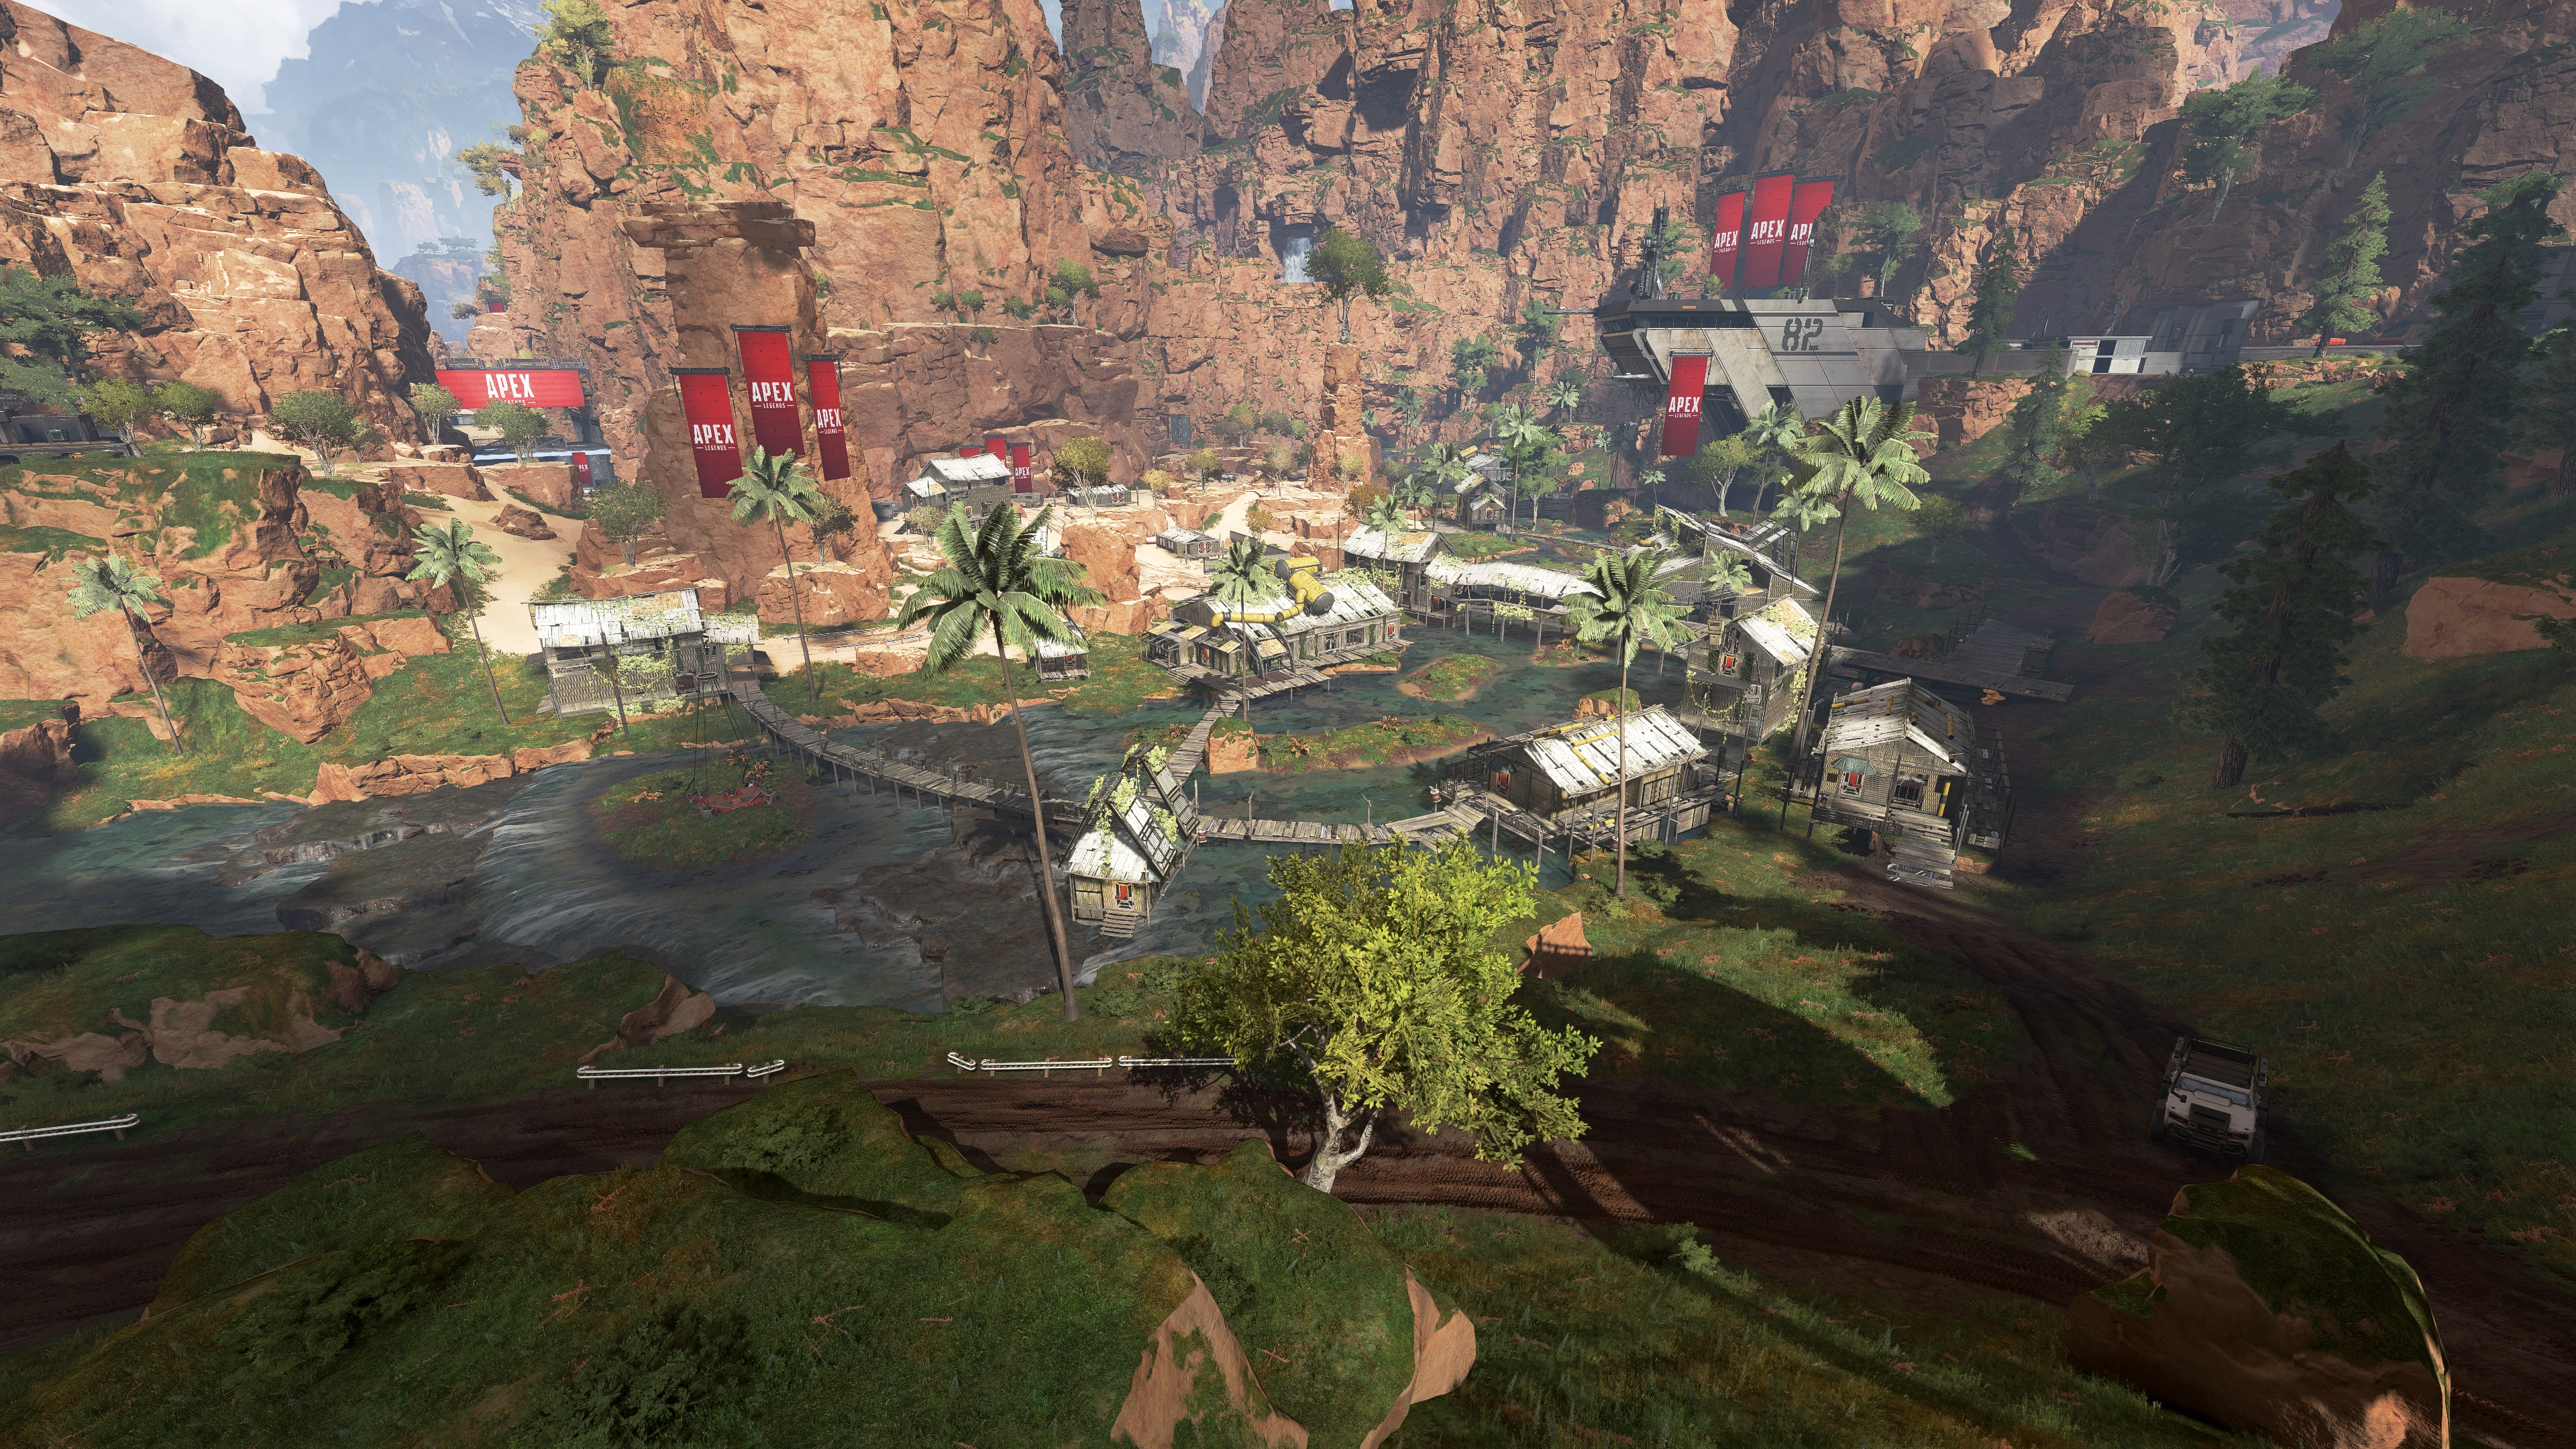 Watch Apex Legends, the Titanfall battle royale game, in action